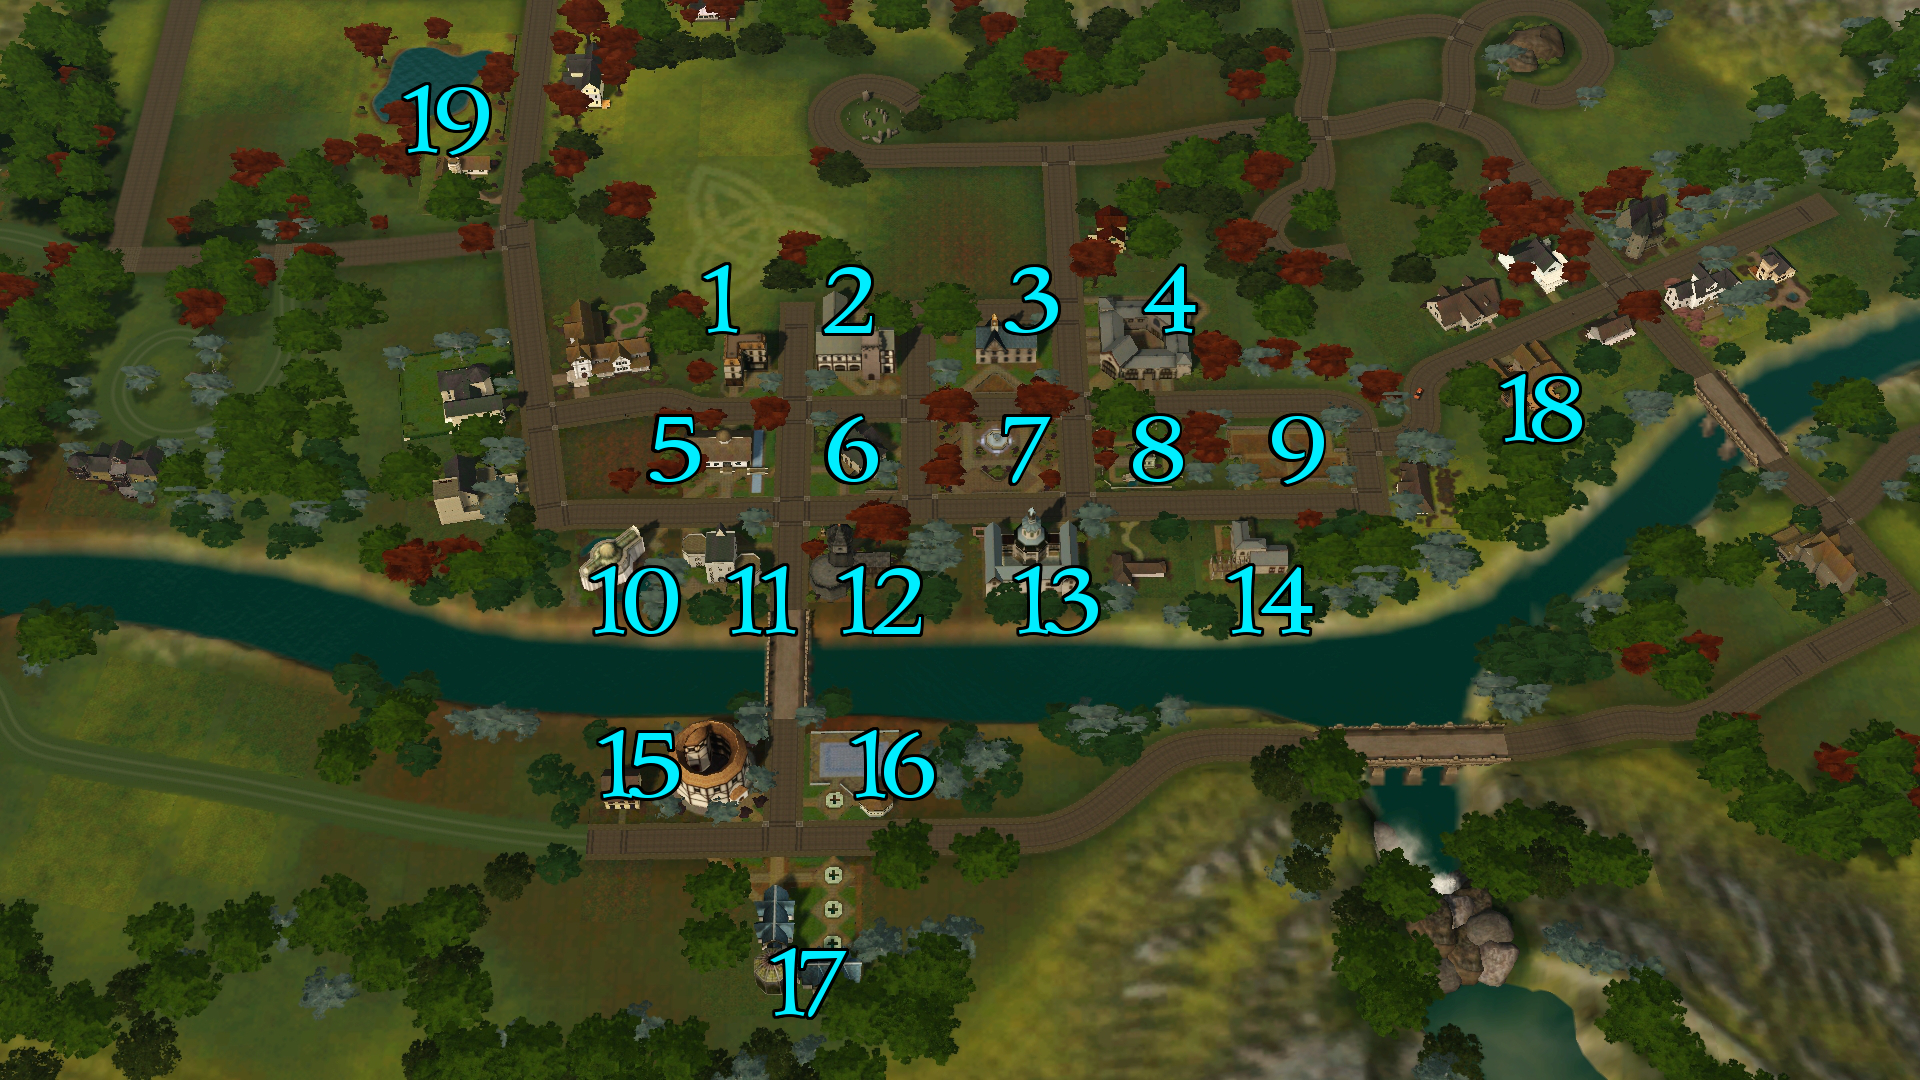 The sims 3 dragon valley world info collectibles baby dragons the sims 3 dragon valley world map of downtown area gumiabroncs Gallery